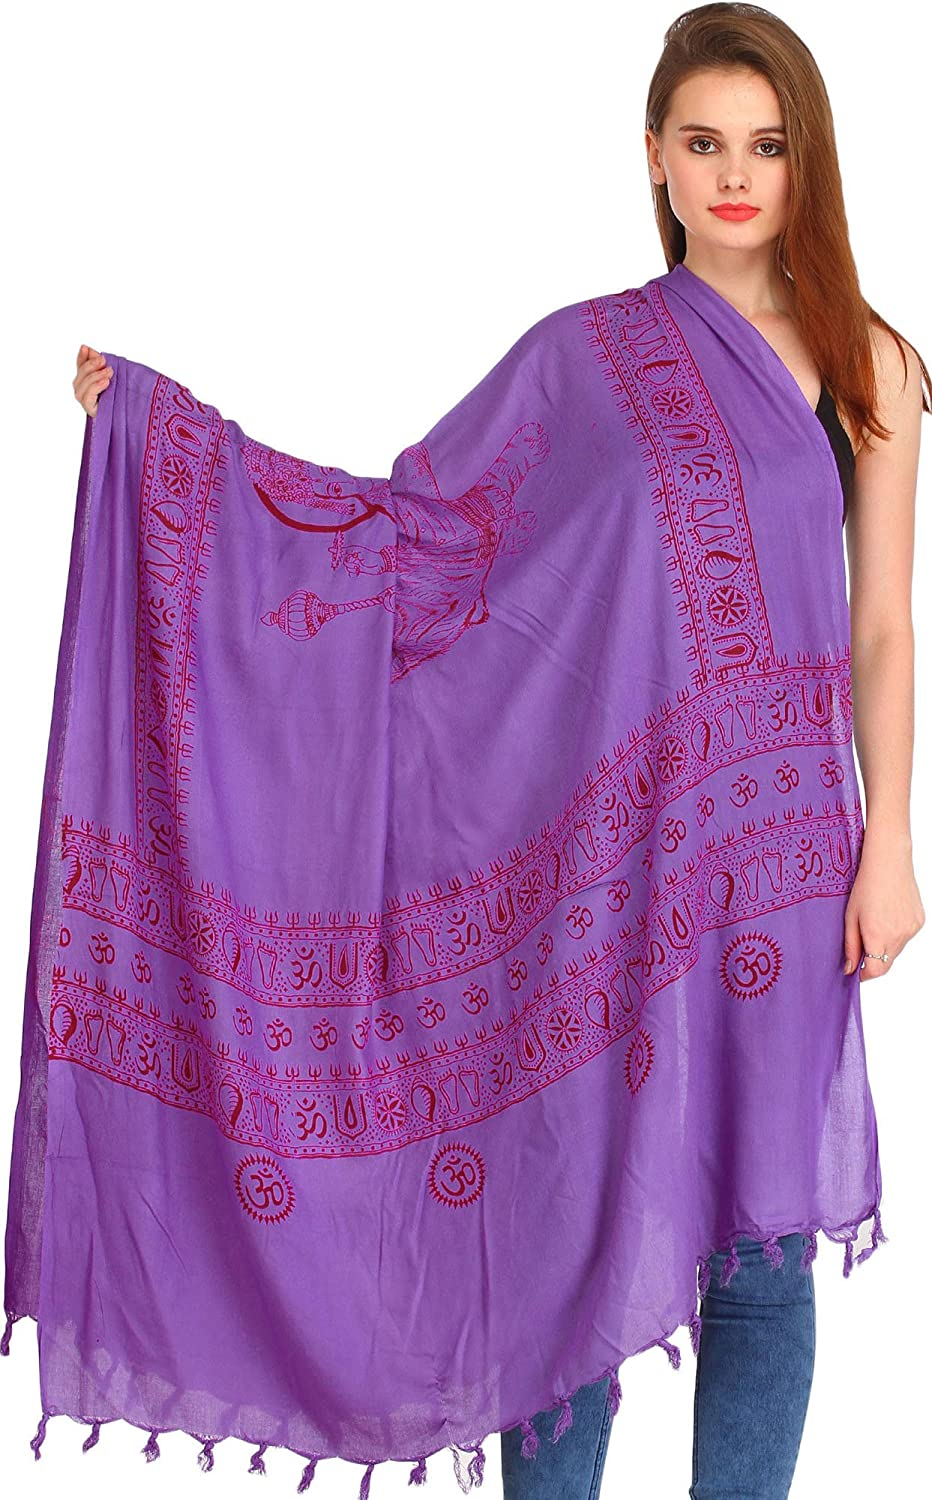 Exotic India Maa Durga Prayer Shawl - Purple SRB40